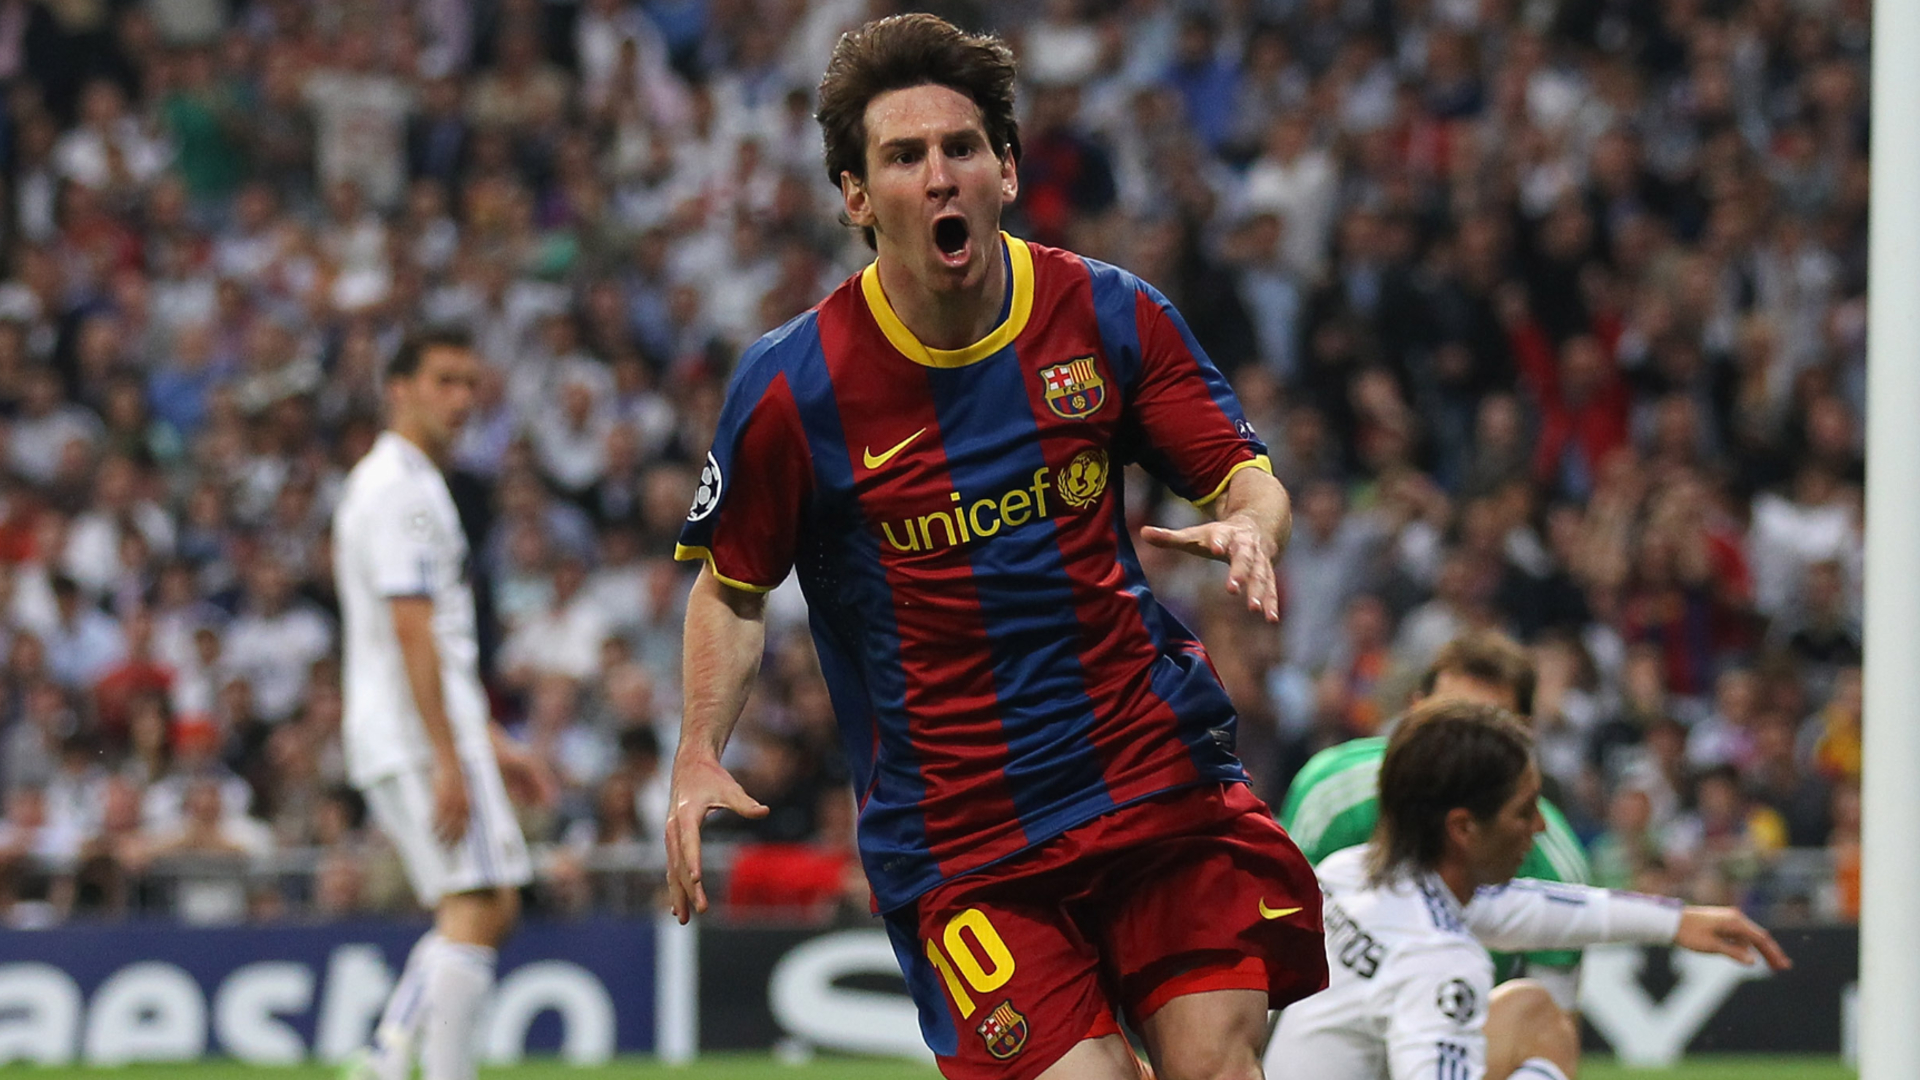 Messi's 33rd birthday: The prolific Barcelona star's best 10 goals